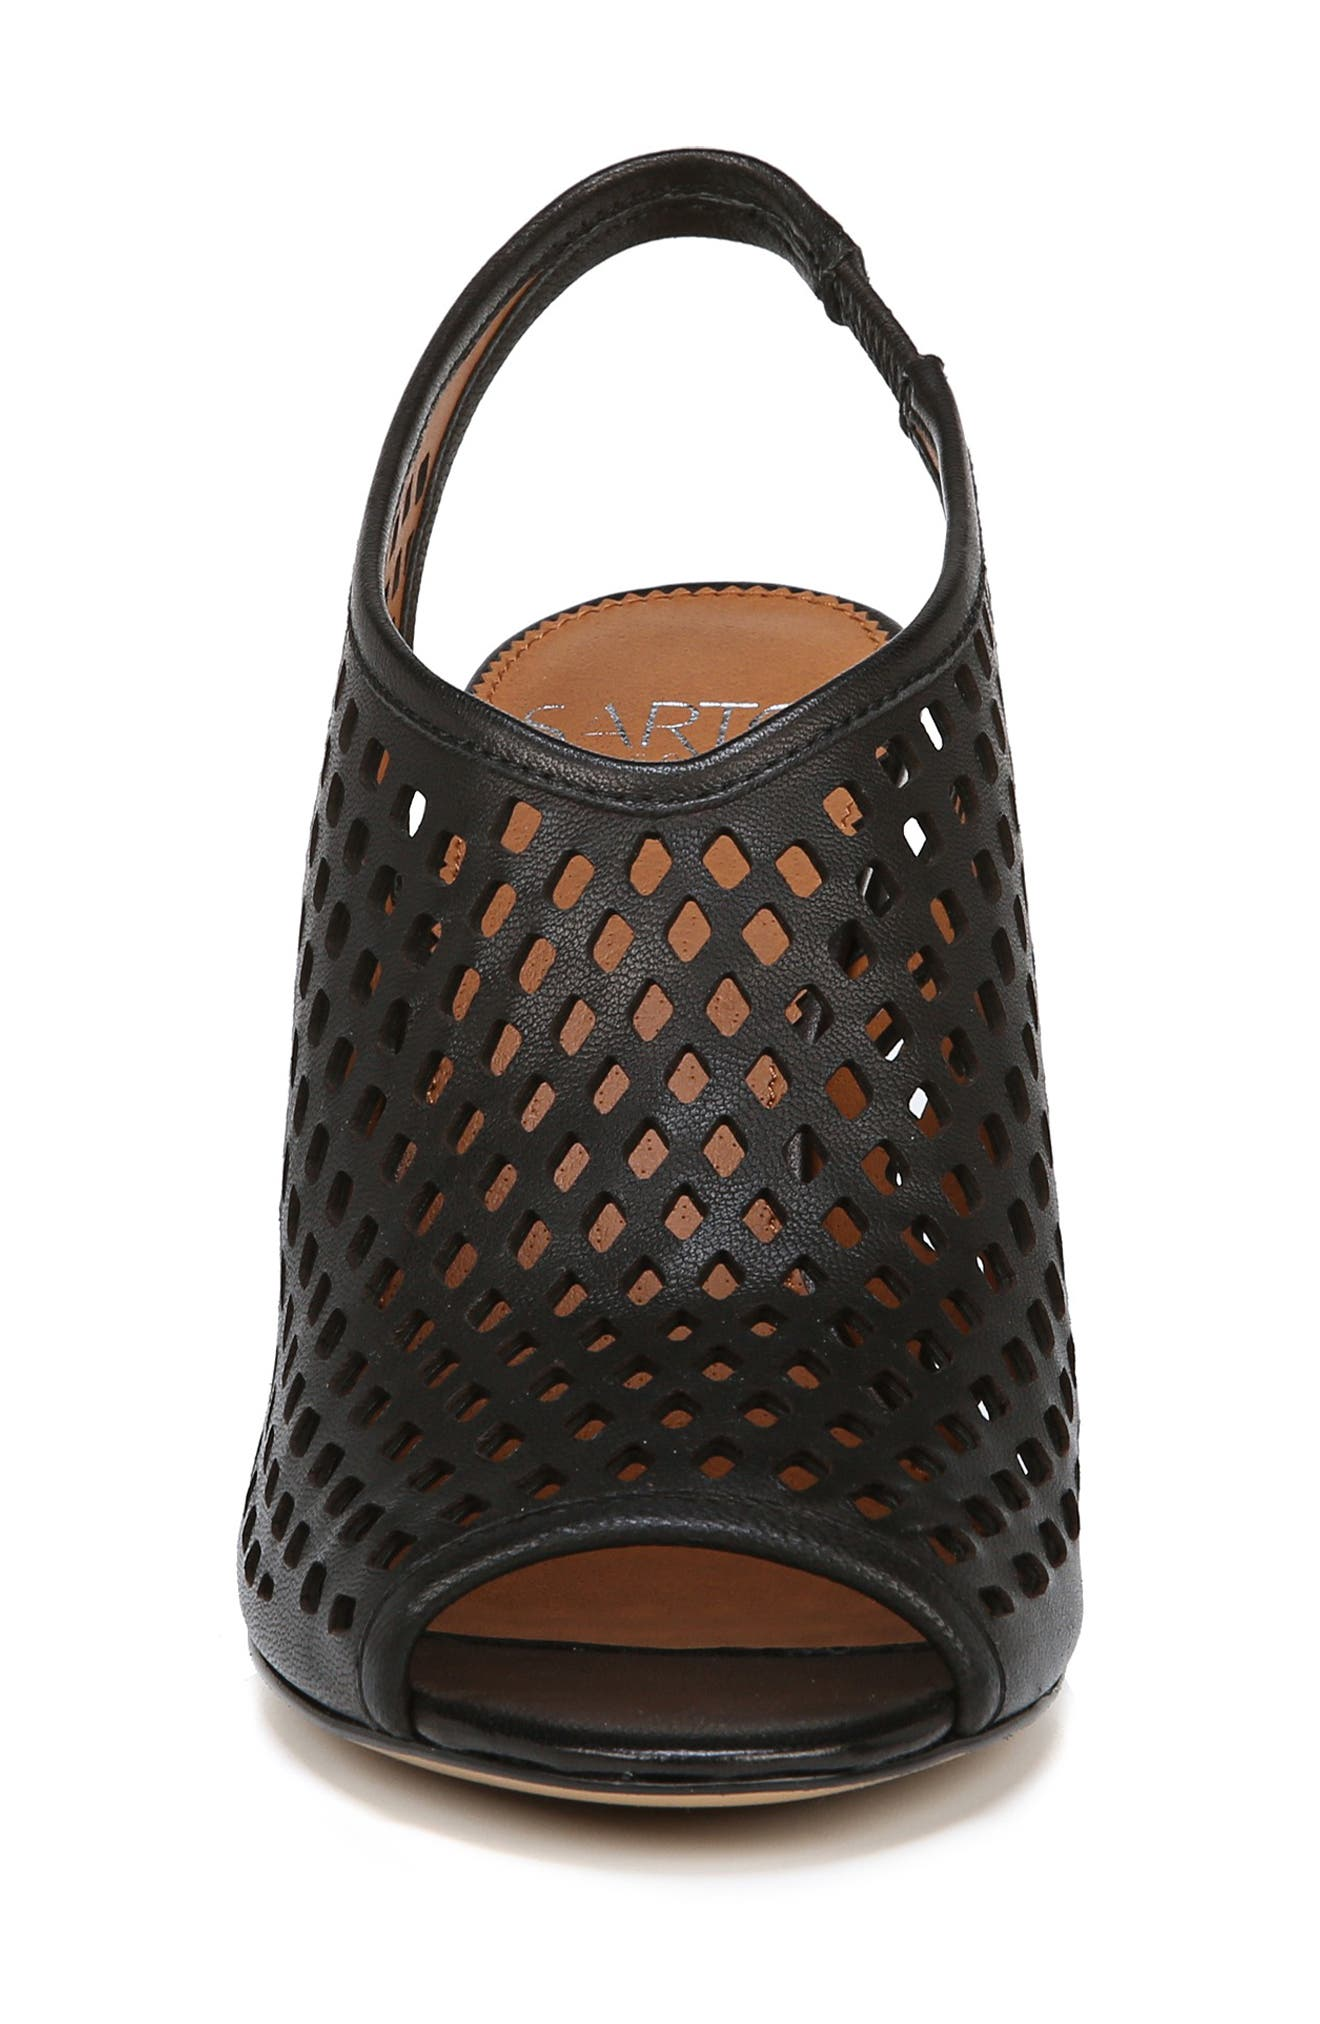 Osbourne Perforated Slingback Sandal,                             Alternate thumbnail 4, color,                             BLACK LEATHER